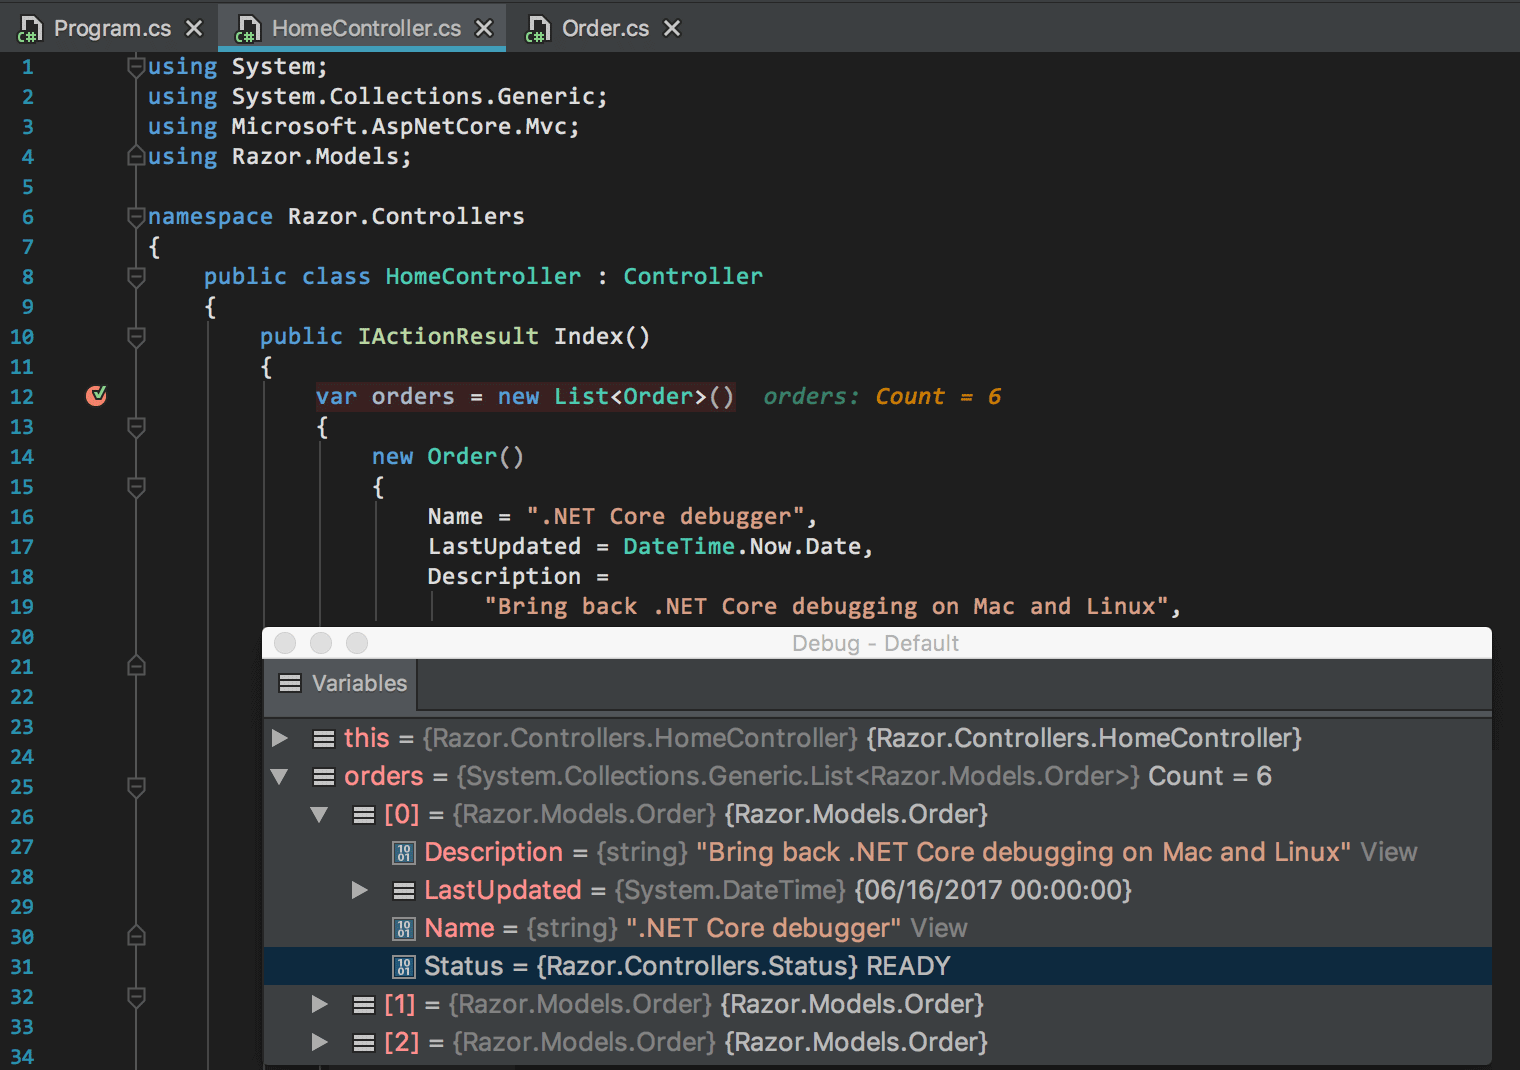 .NET Core debugging on Mac and Linux is back